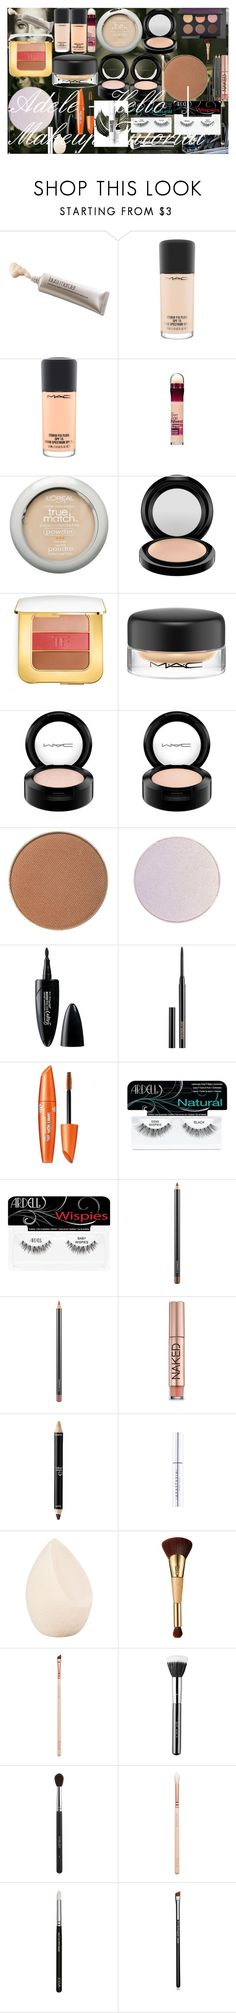 Adele - Hello | Makeup Tutorial by oroartye-1 on Polyvore featuring beauty, MAC Cosmetics, Tom Ford, Laura Mercier, tarte, Sigma, Chanel, Inglot, Urban Decay and Christian Dior